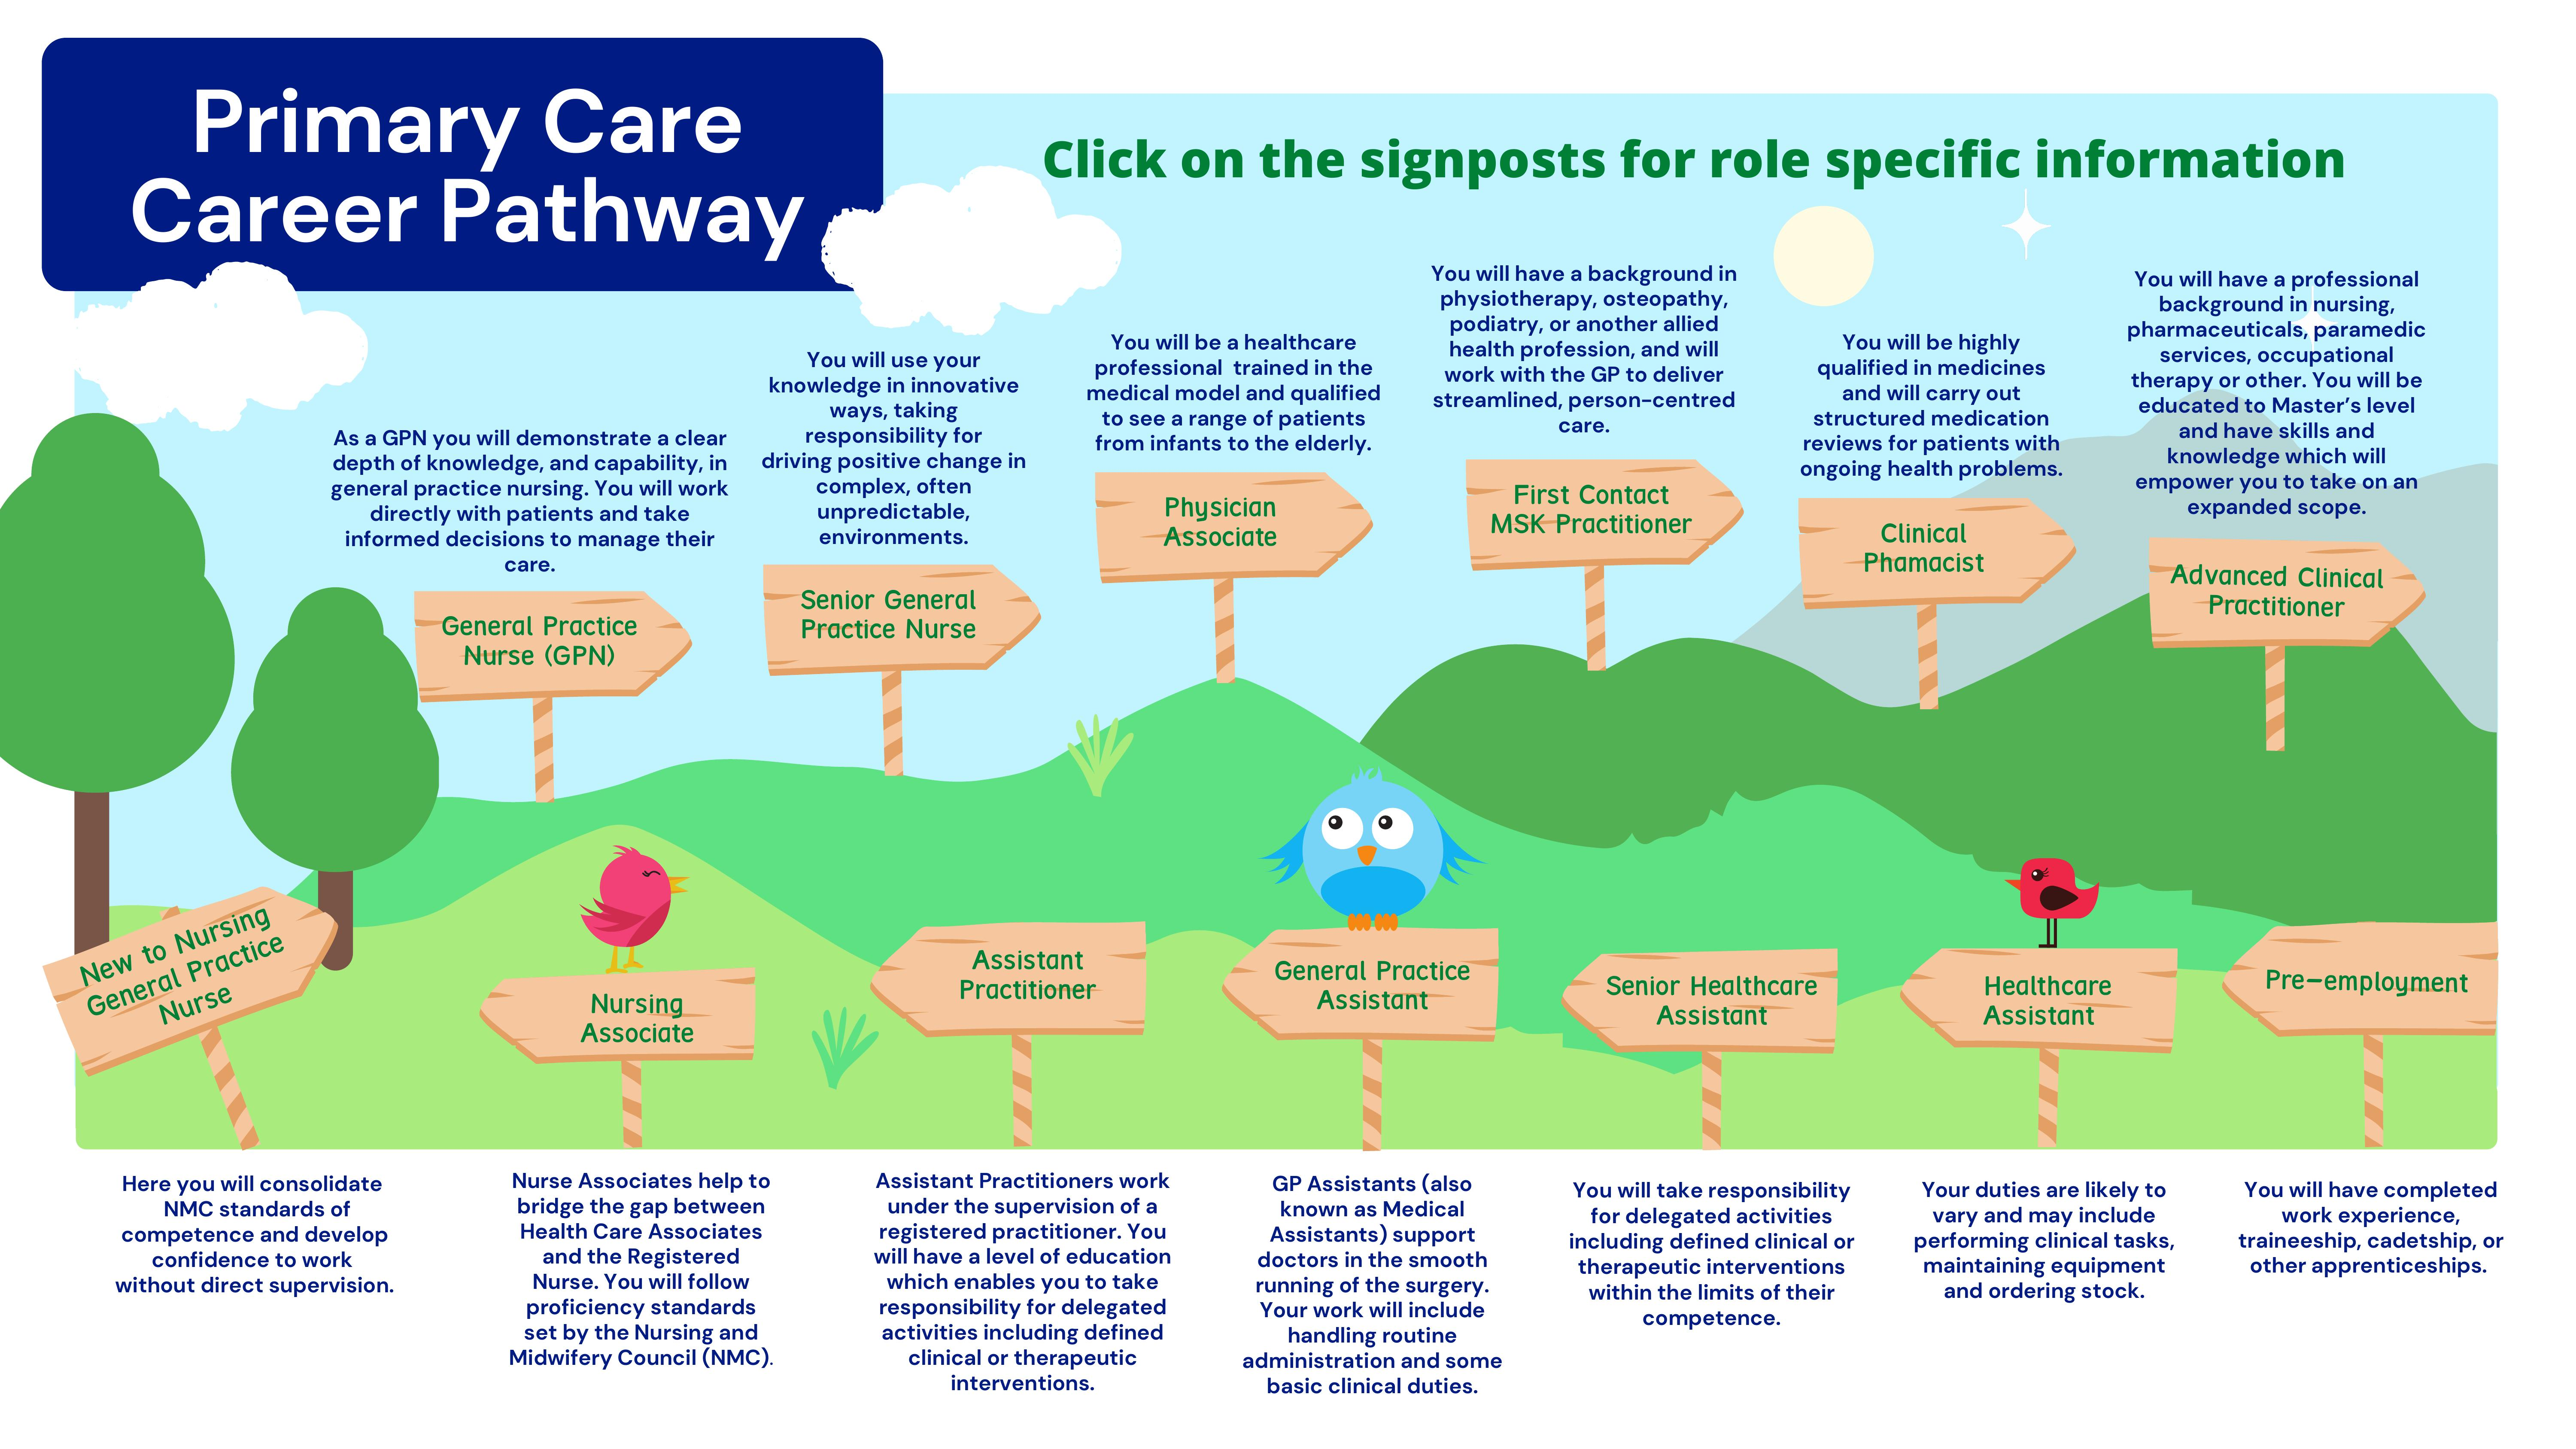 Primary Care Career Pathway (5)